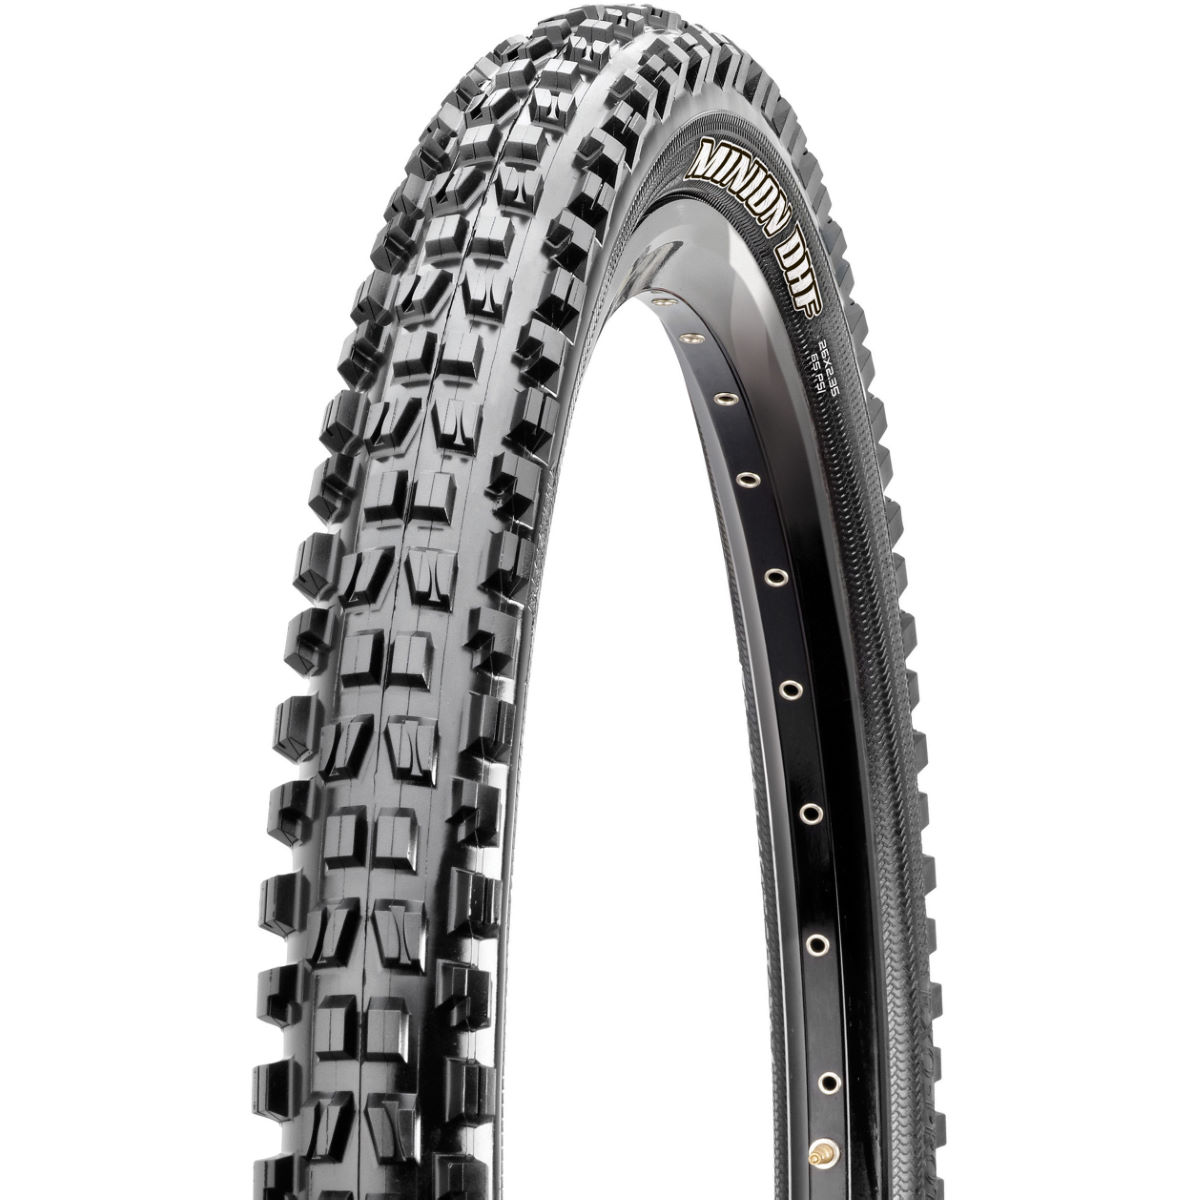 Maxxis Maxxis Minion DHF Wide Trail Tyre - 3C - TR -DD   Tyres